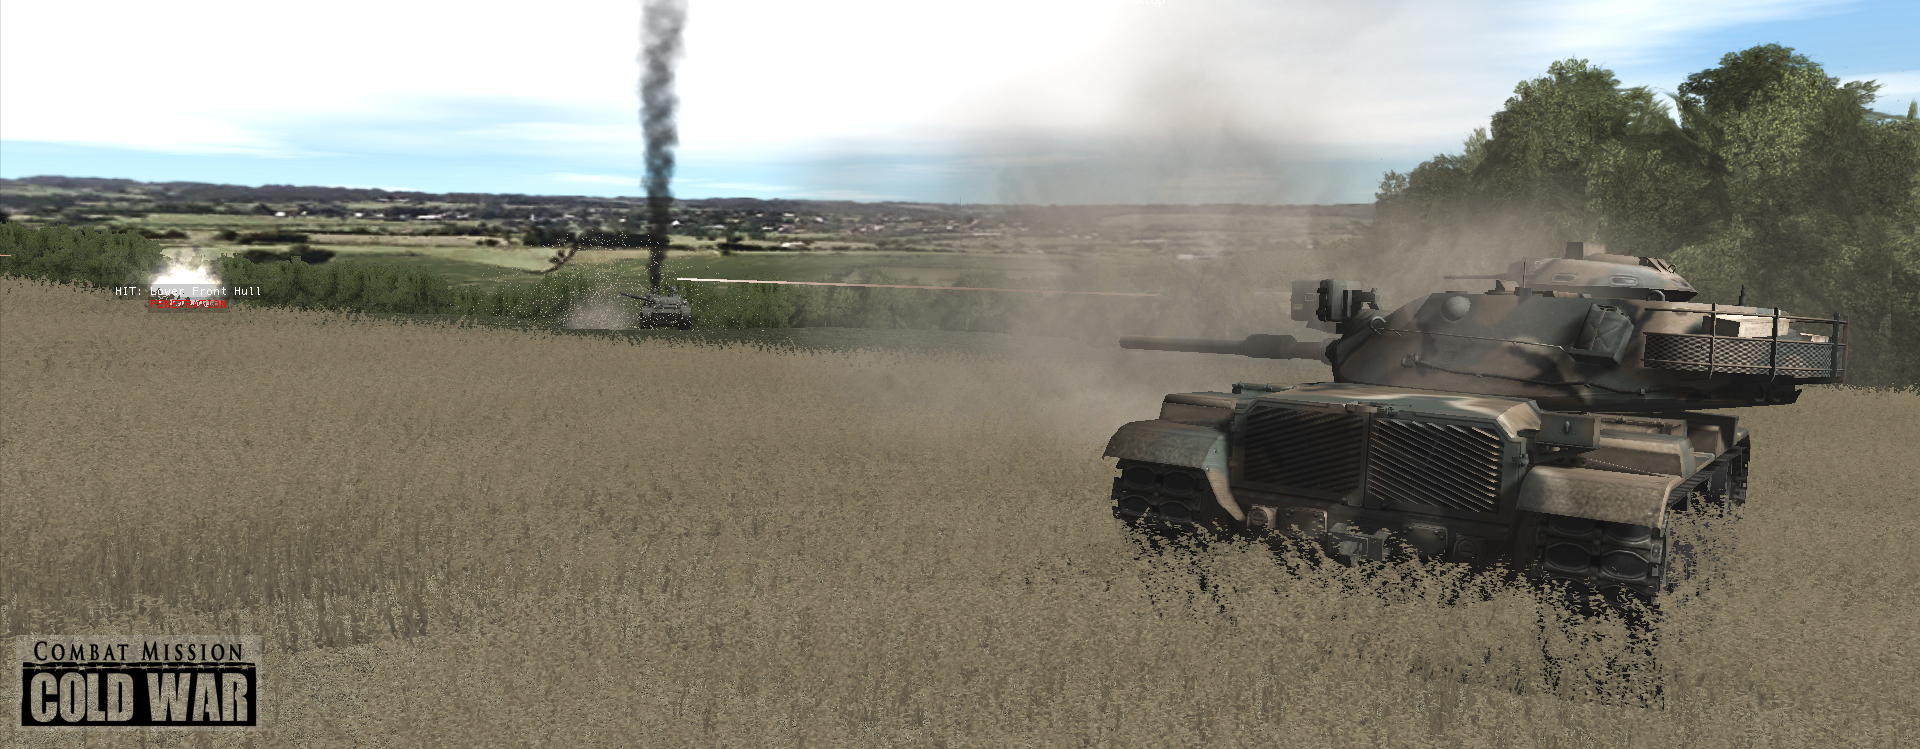 T23_A5.PNG